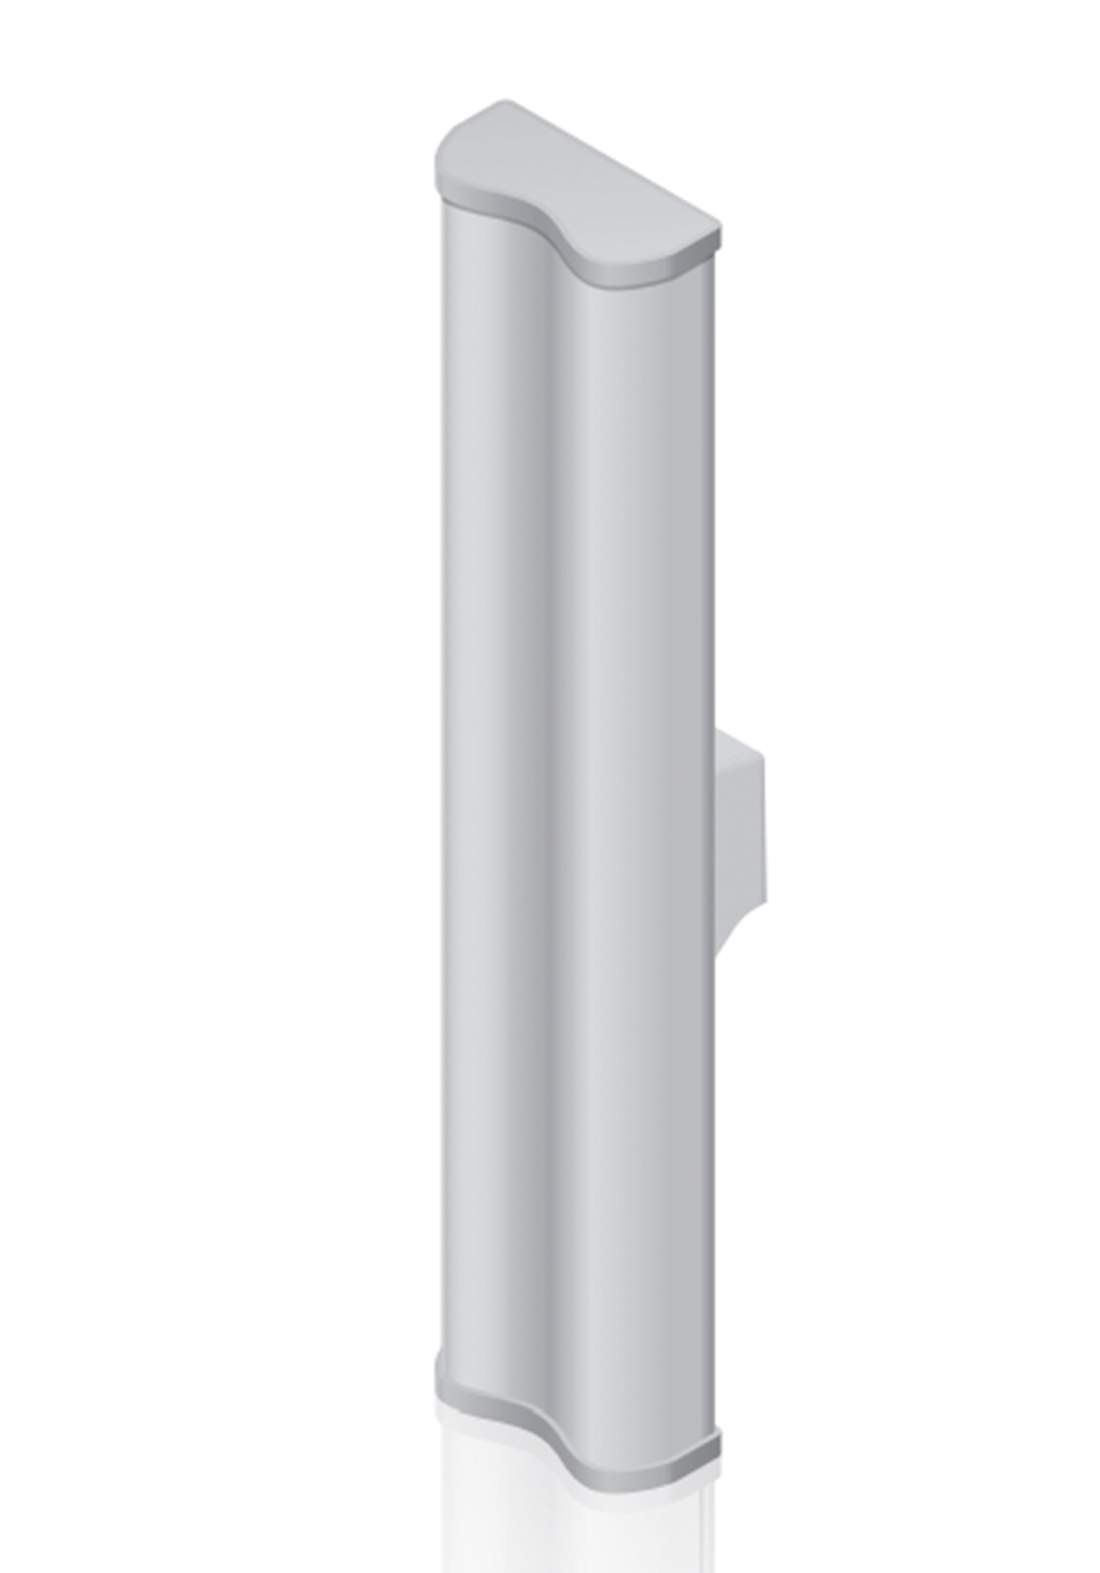 Ubiquiti Networks AM-2G16-90 AirMAX BaseStation Sector Antenna - White هوائي